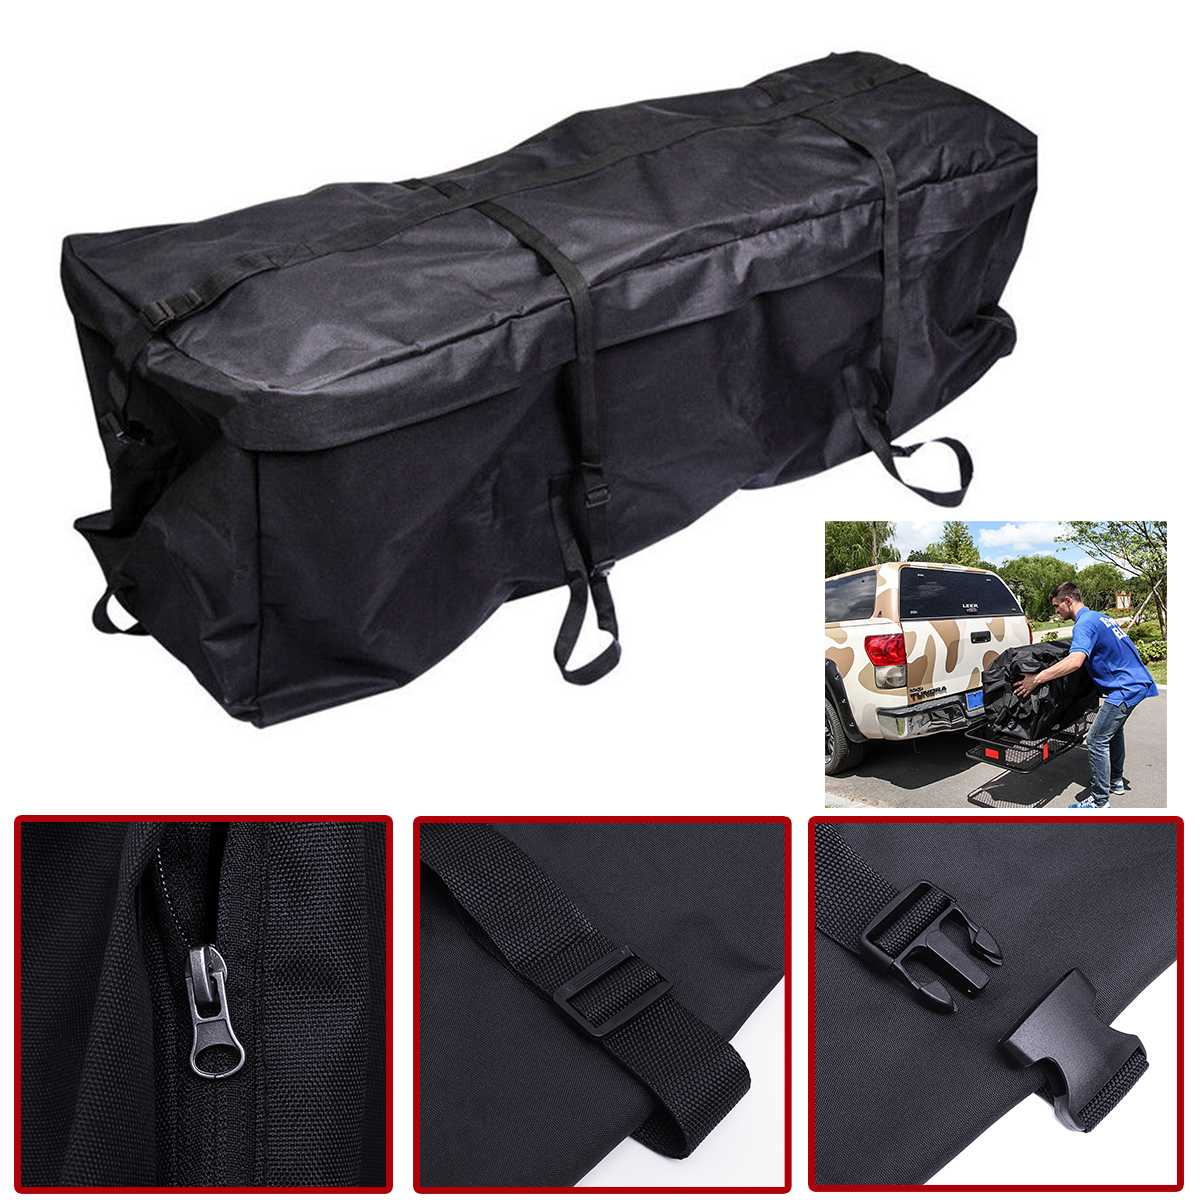 Universal Car Roof Top Bag Roof Top Bag Rack Cargo Carrier Luggage Storage Travel Waterproof Touring SUV Van for Cars Styling